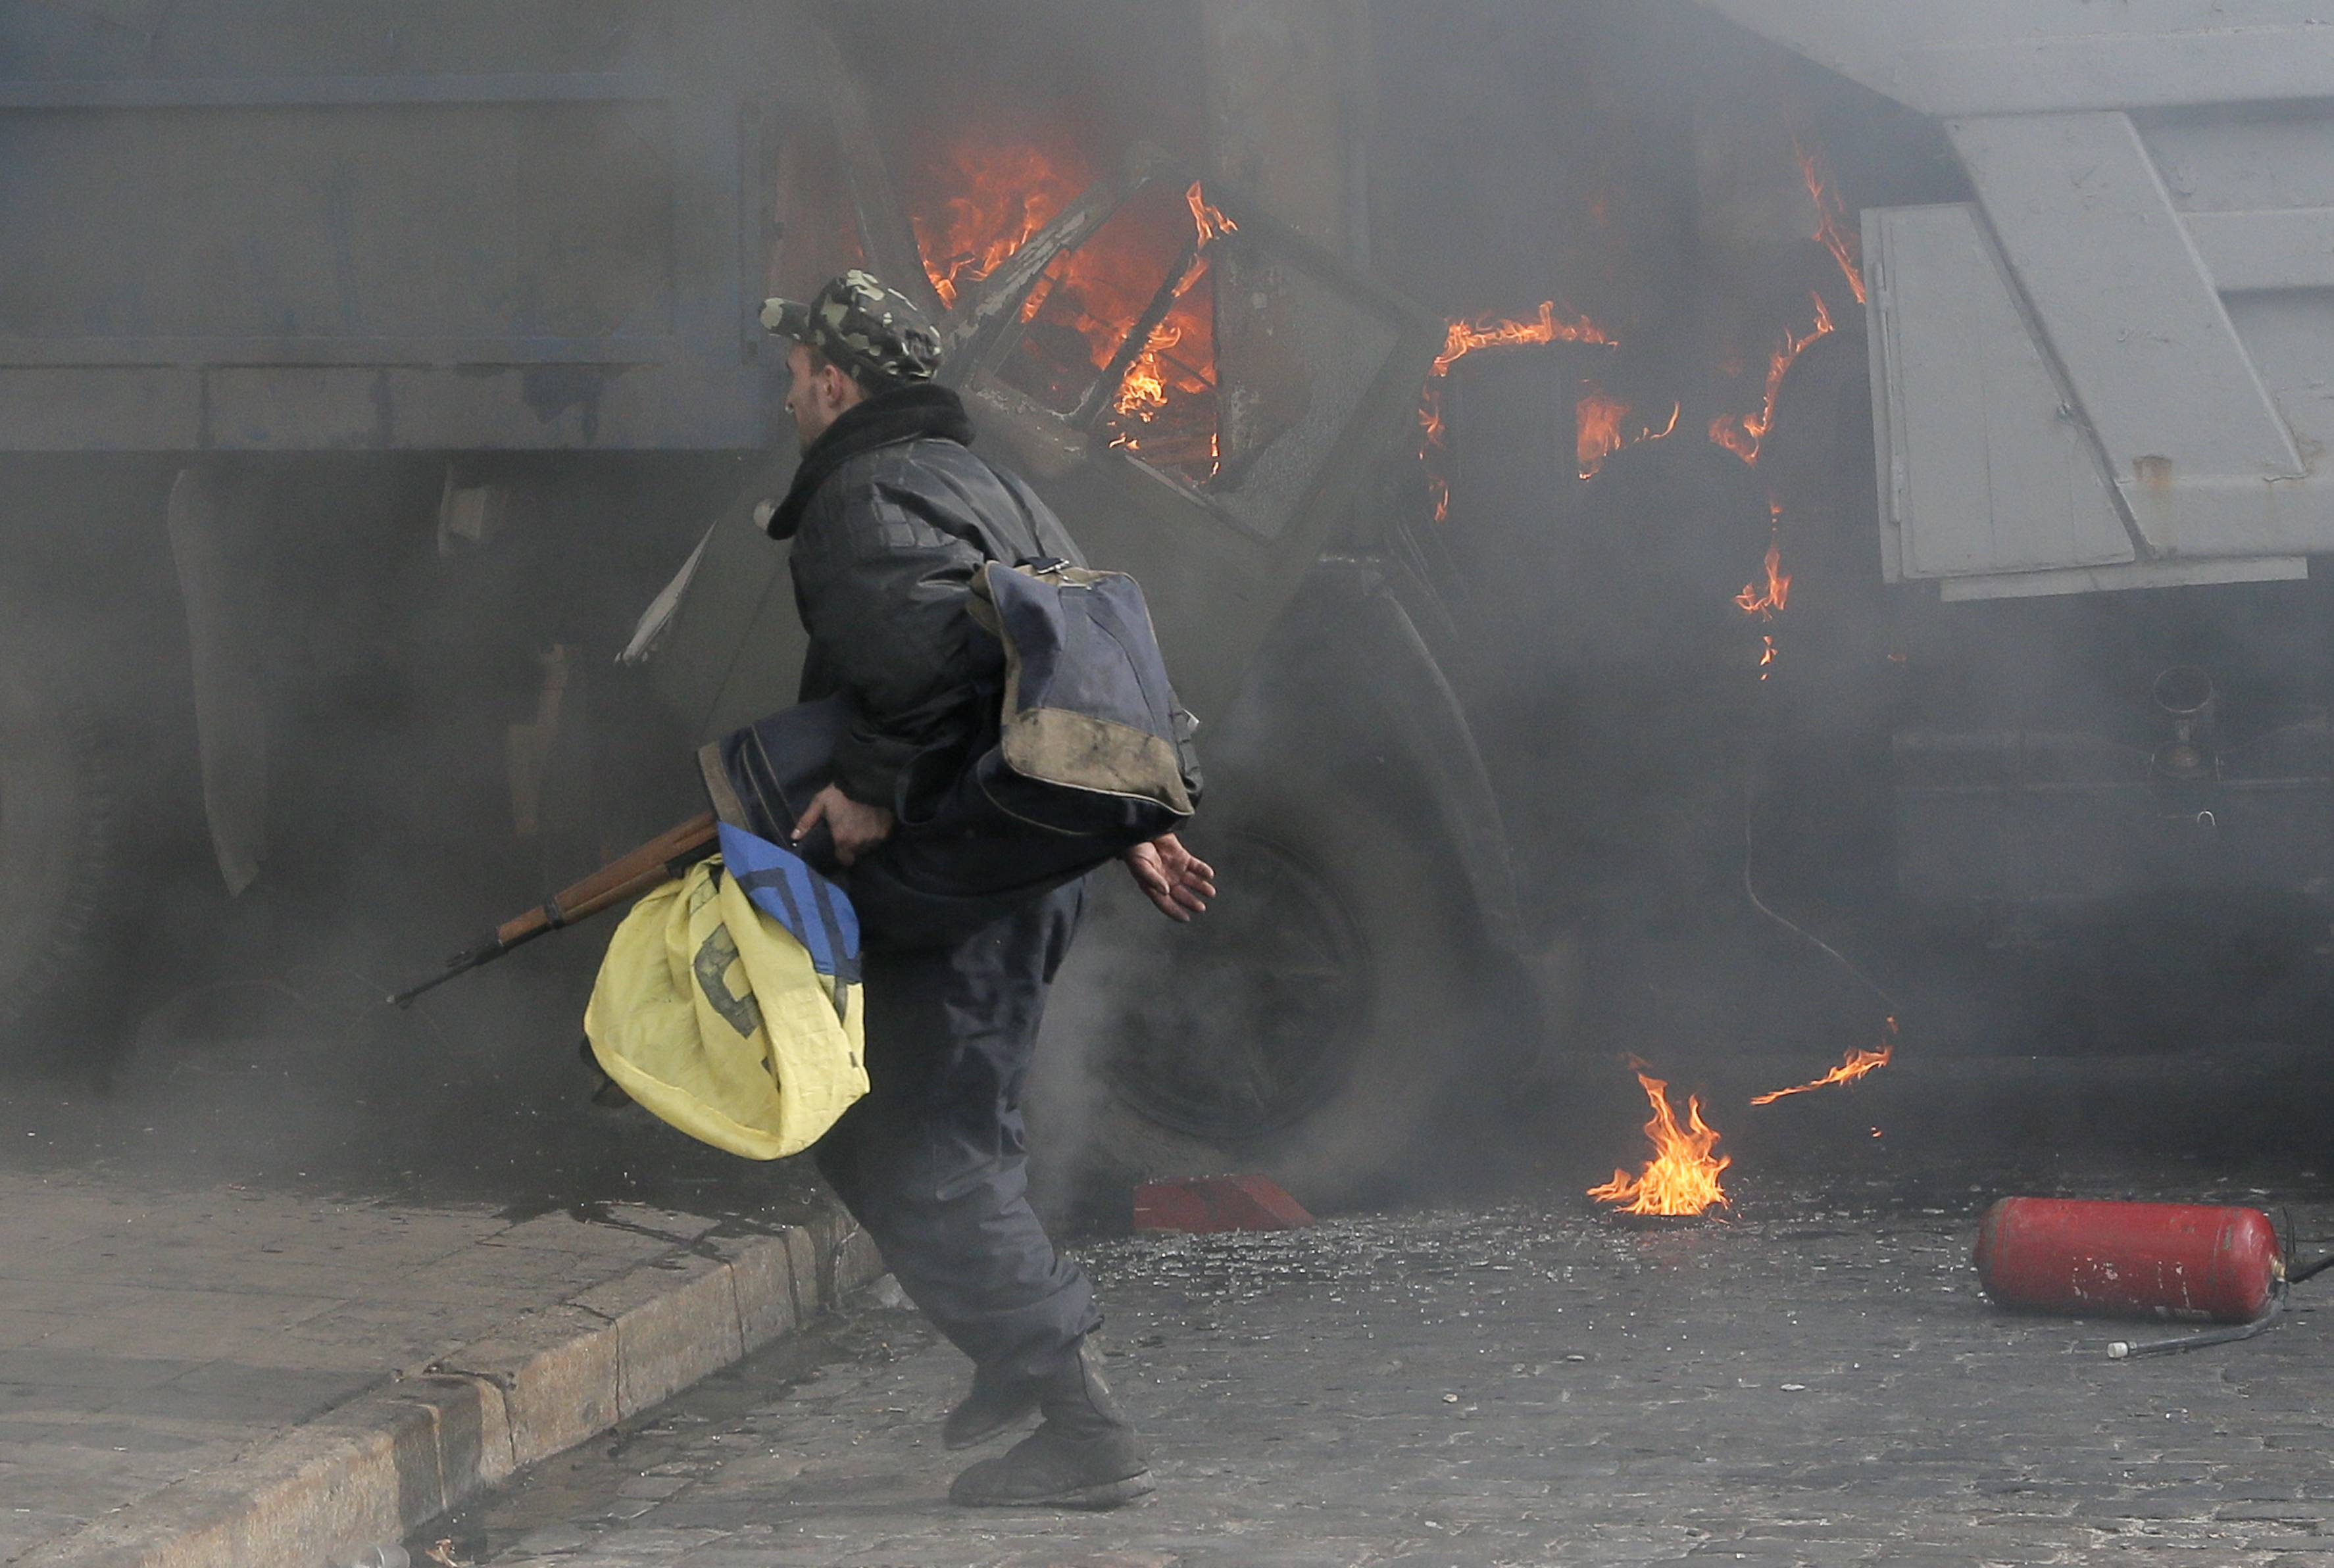 A man with a gun runs along a street during a clash between opposition protesters and riot police near the Presidential office in Kiev, Ukraine. As questions circulate about who was behind the lethal snipers that sowed death and terror in Ukraine's capital, doctors and others told the AP the similarity of bullets wounds suffered by opposition victims and police indicates the snipers were specifically trying to stoke tensions and spark a larger, angrier clash between opposition fighters and government security forces.